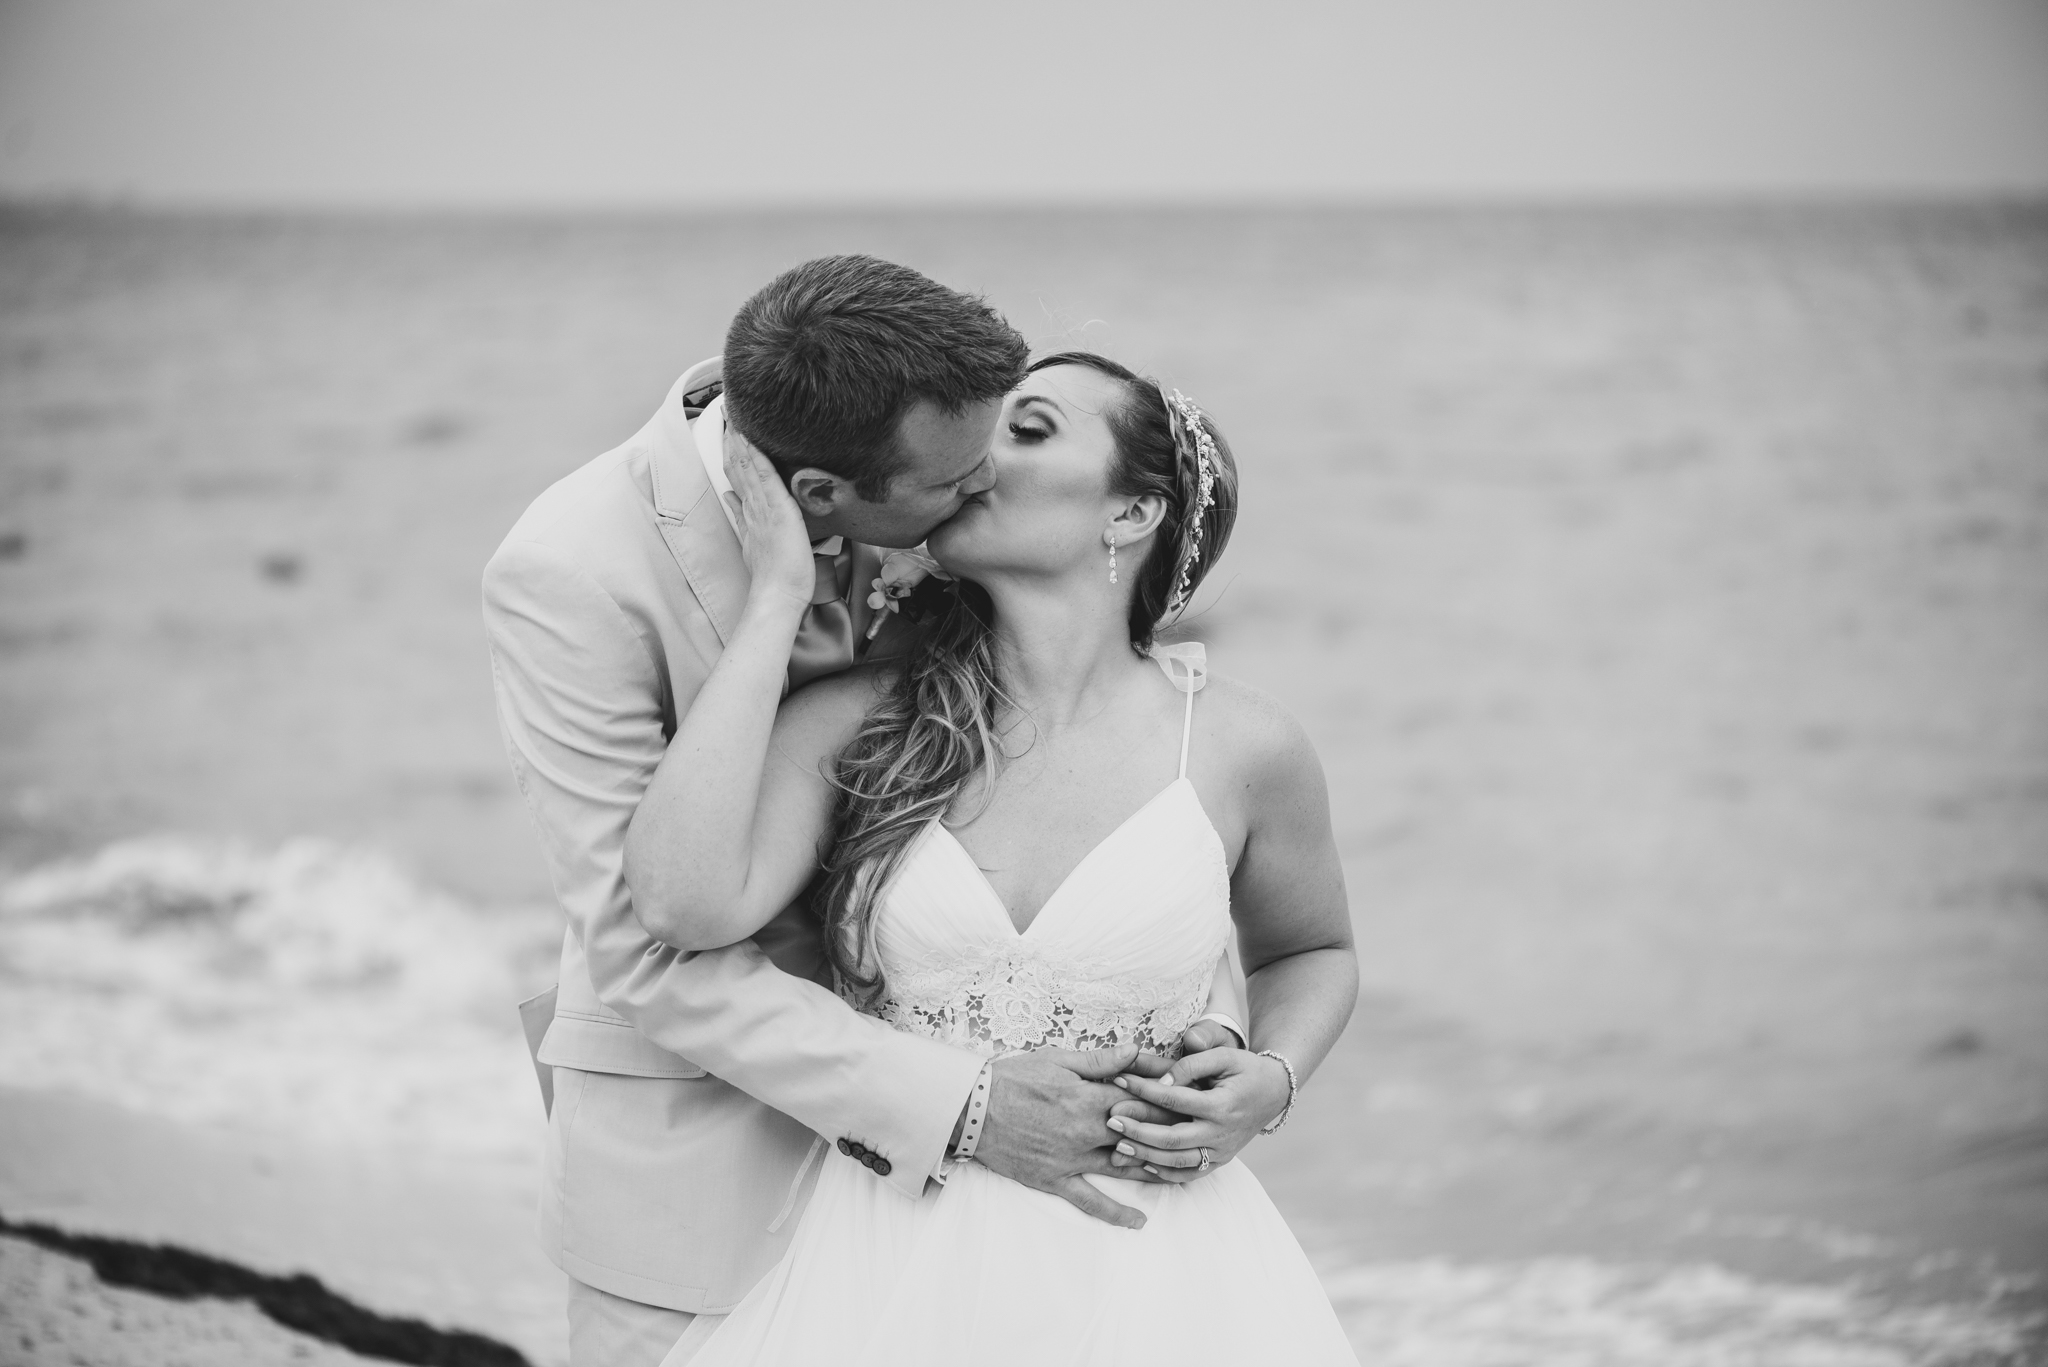 love-and-be-loved-photography-destination-wedding-photographer-cancun-mexico-jessica-jon-image-picture-photo-153.jpg